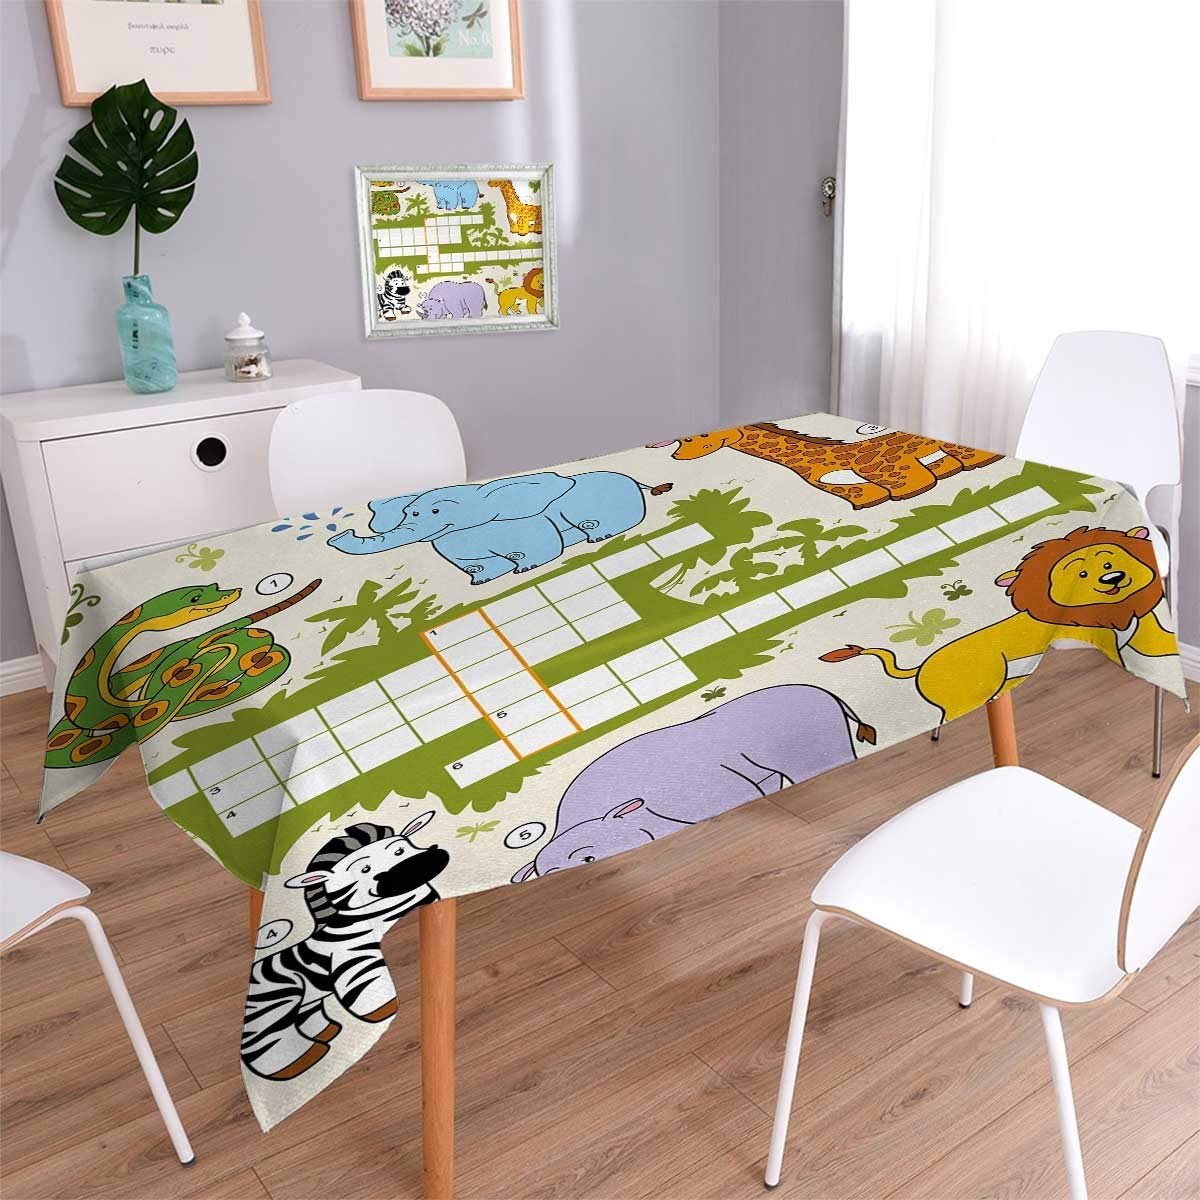 Word Search Puzzle Printed Tablecloth Colorful Crossword